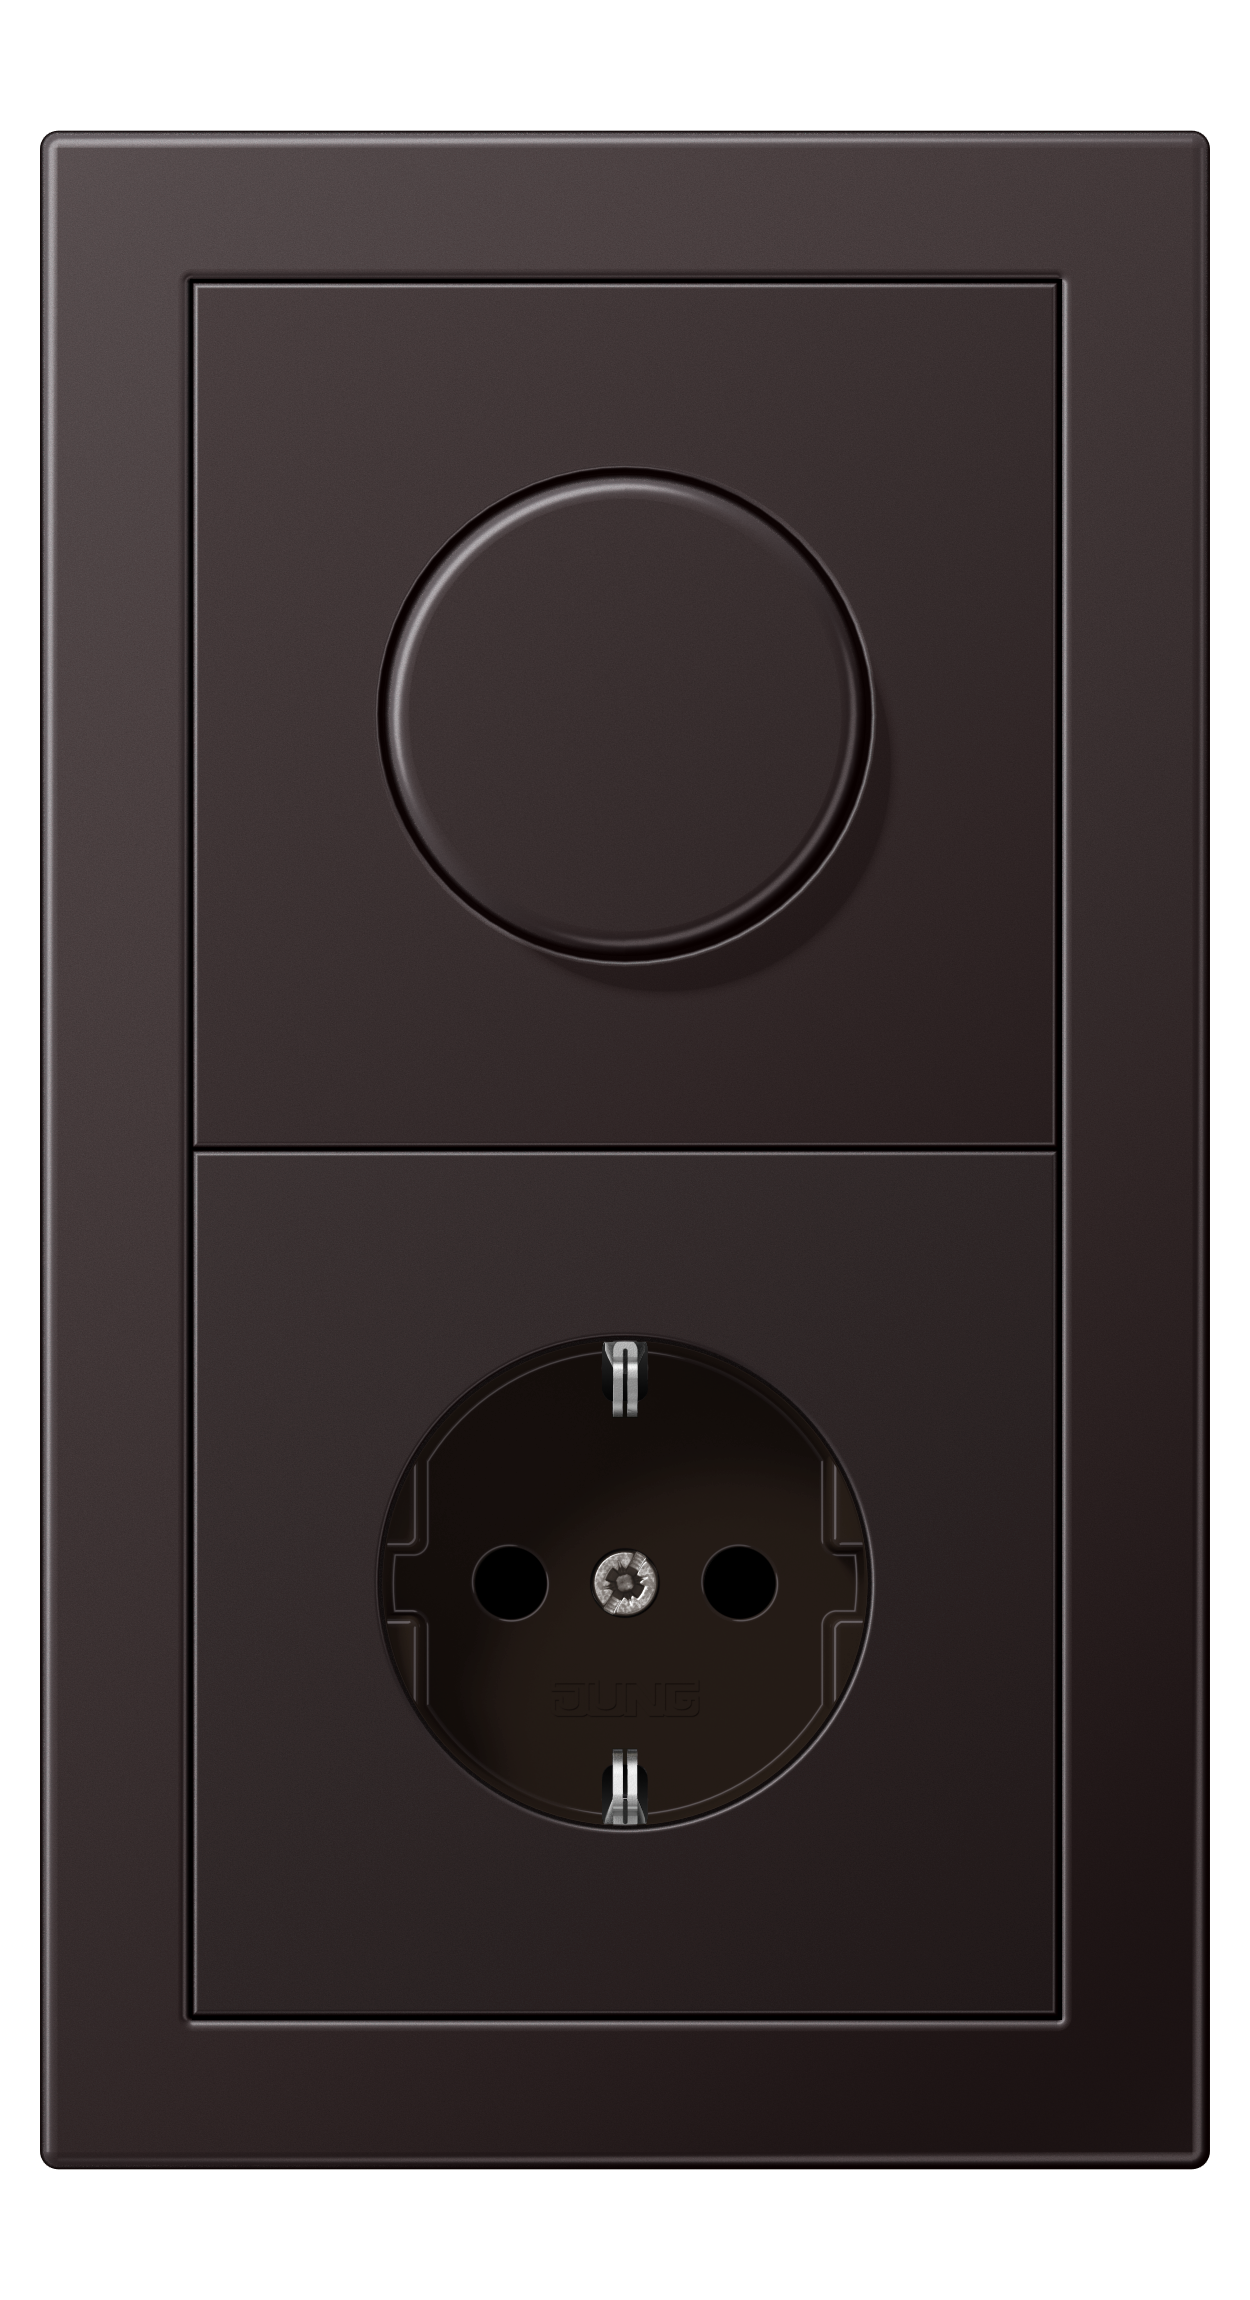 JUNG_LS_Design_aluminium_dark_dimmer-socket